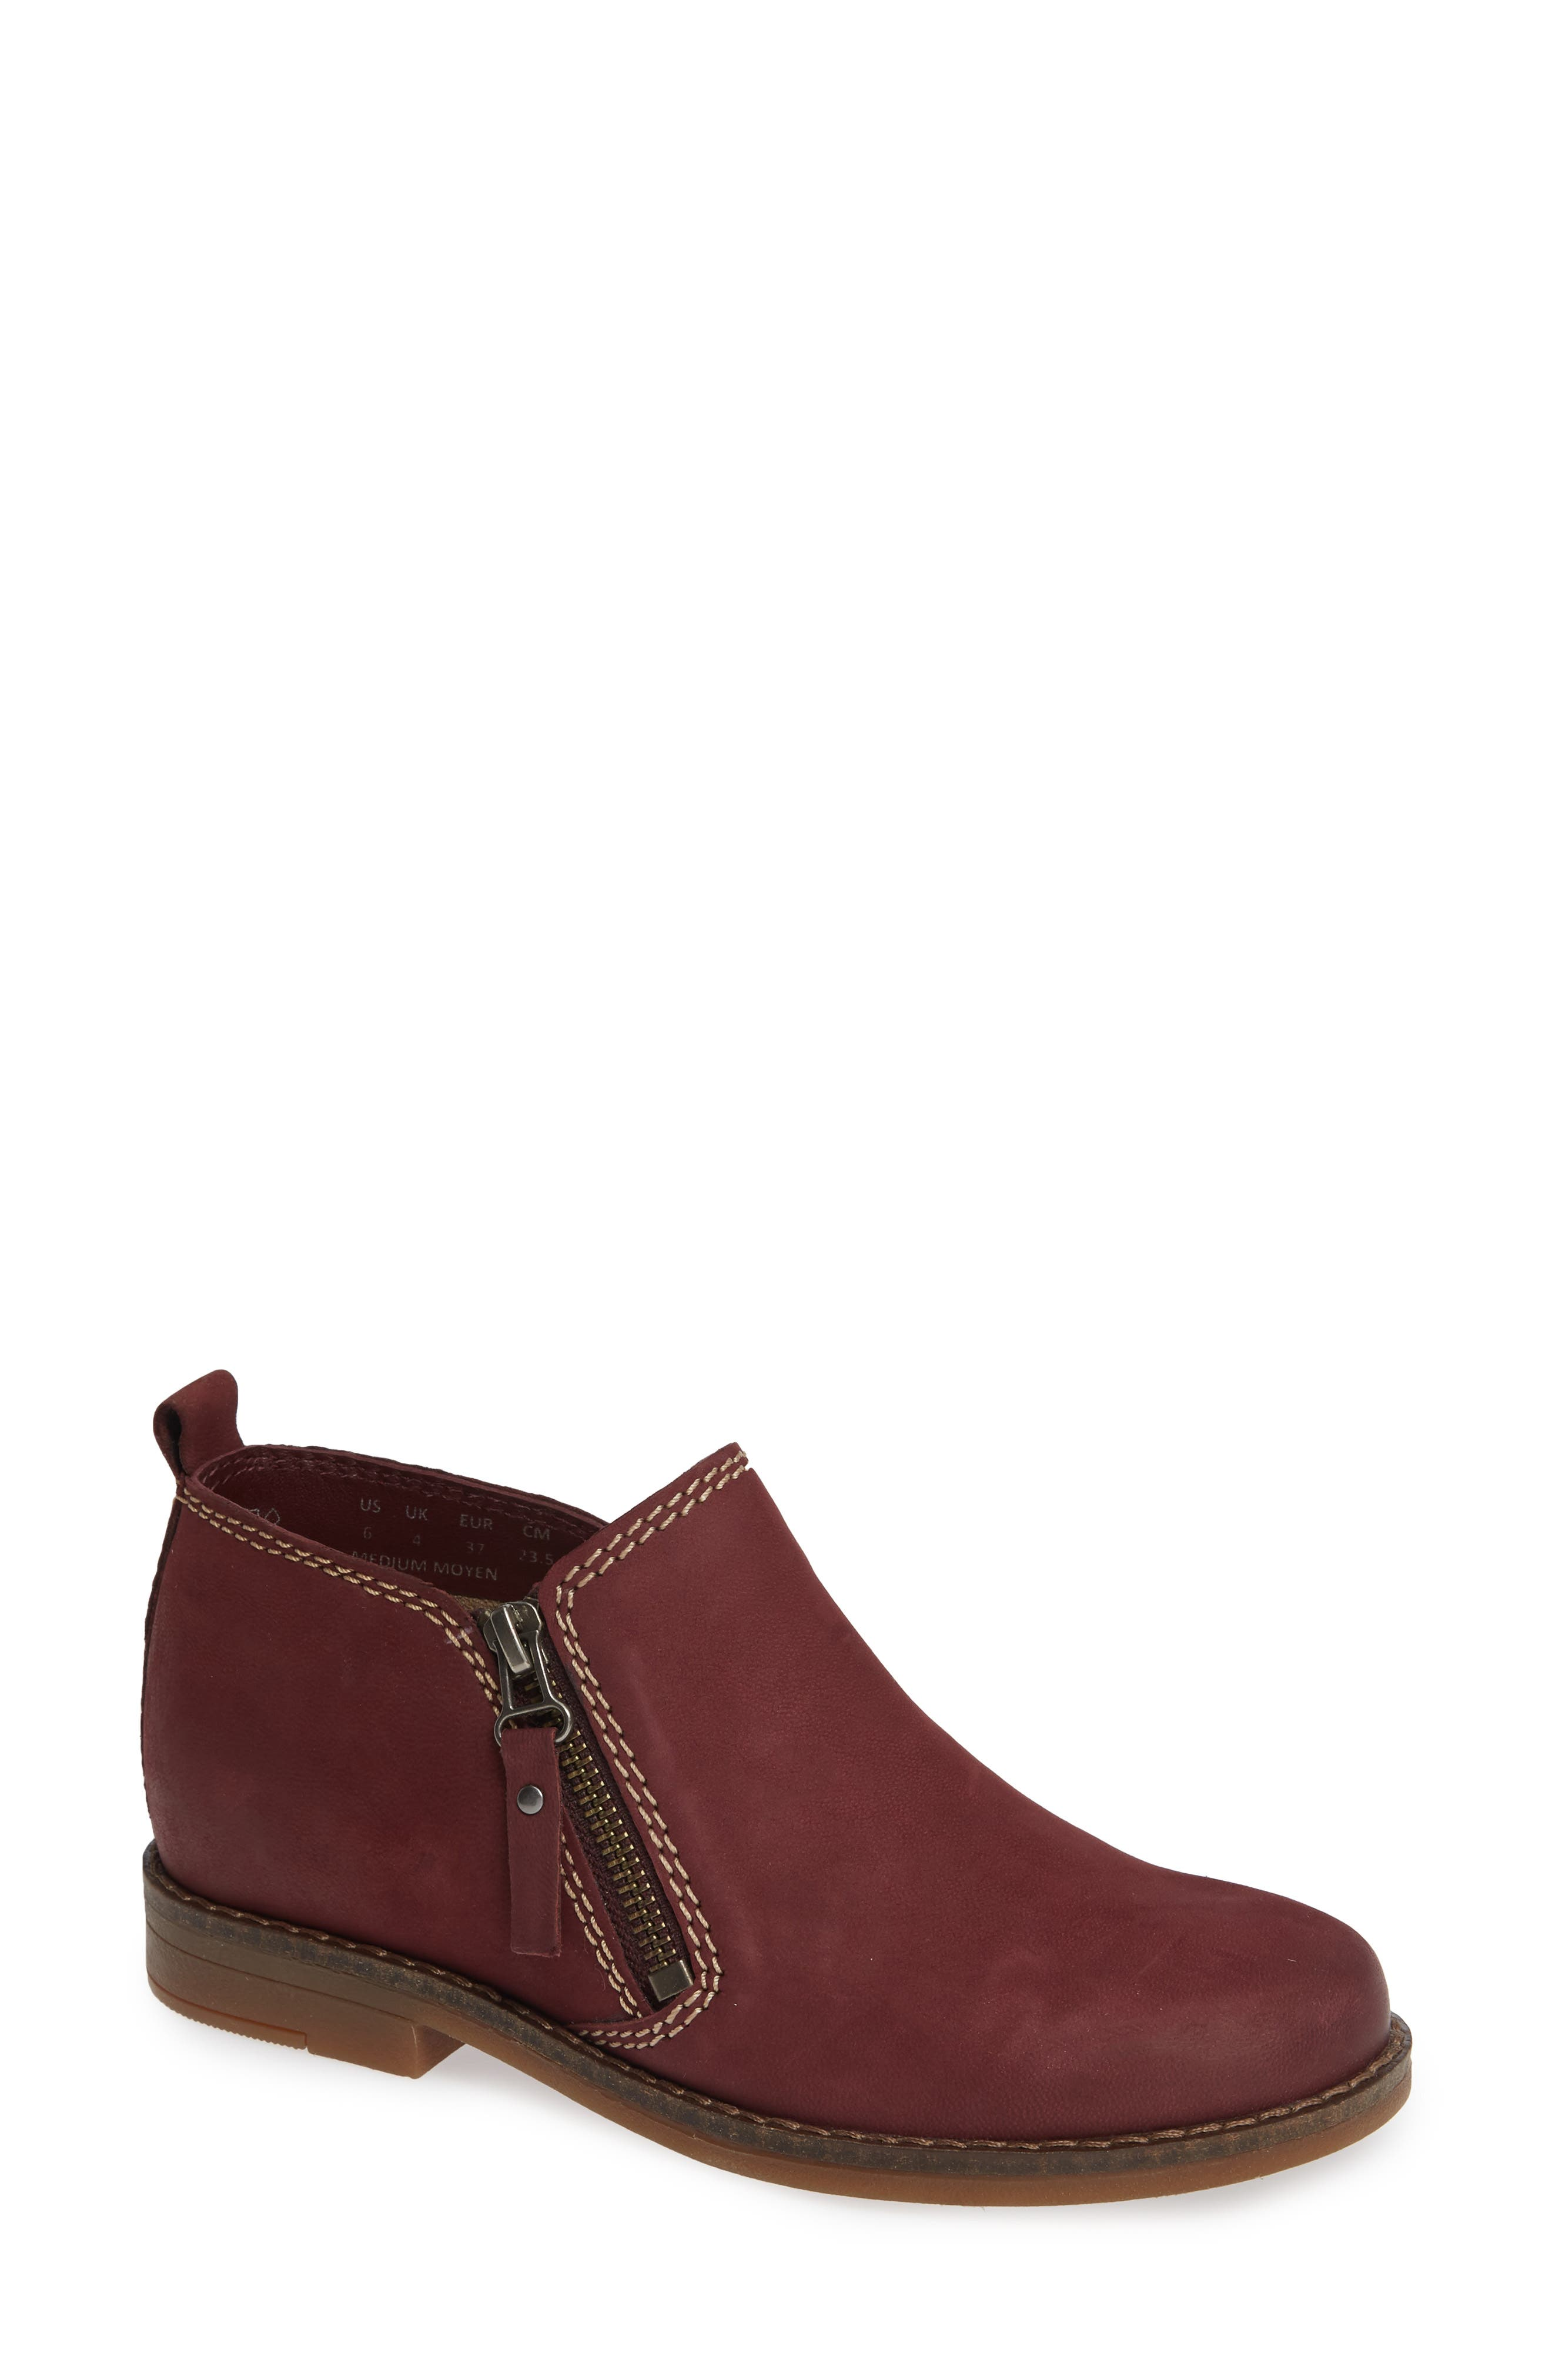 'Mazin Cayto' Bootie,                         Main,                         color, Dark Wine Nubuck